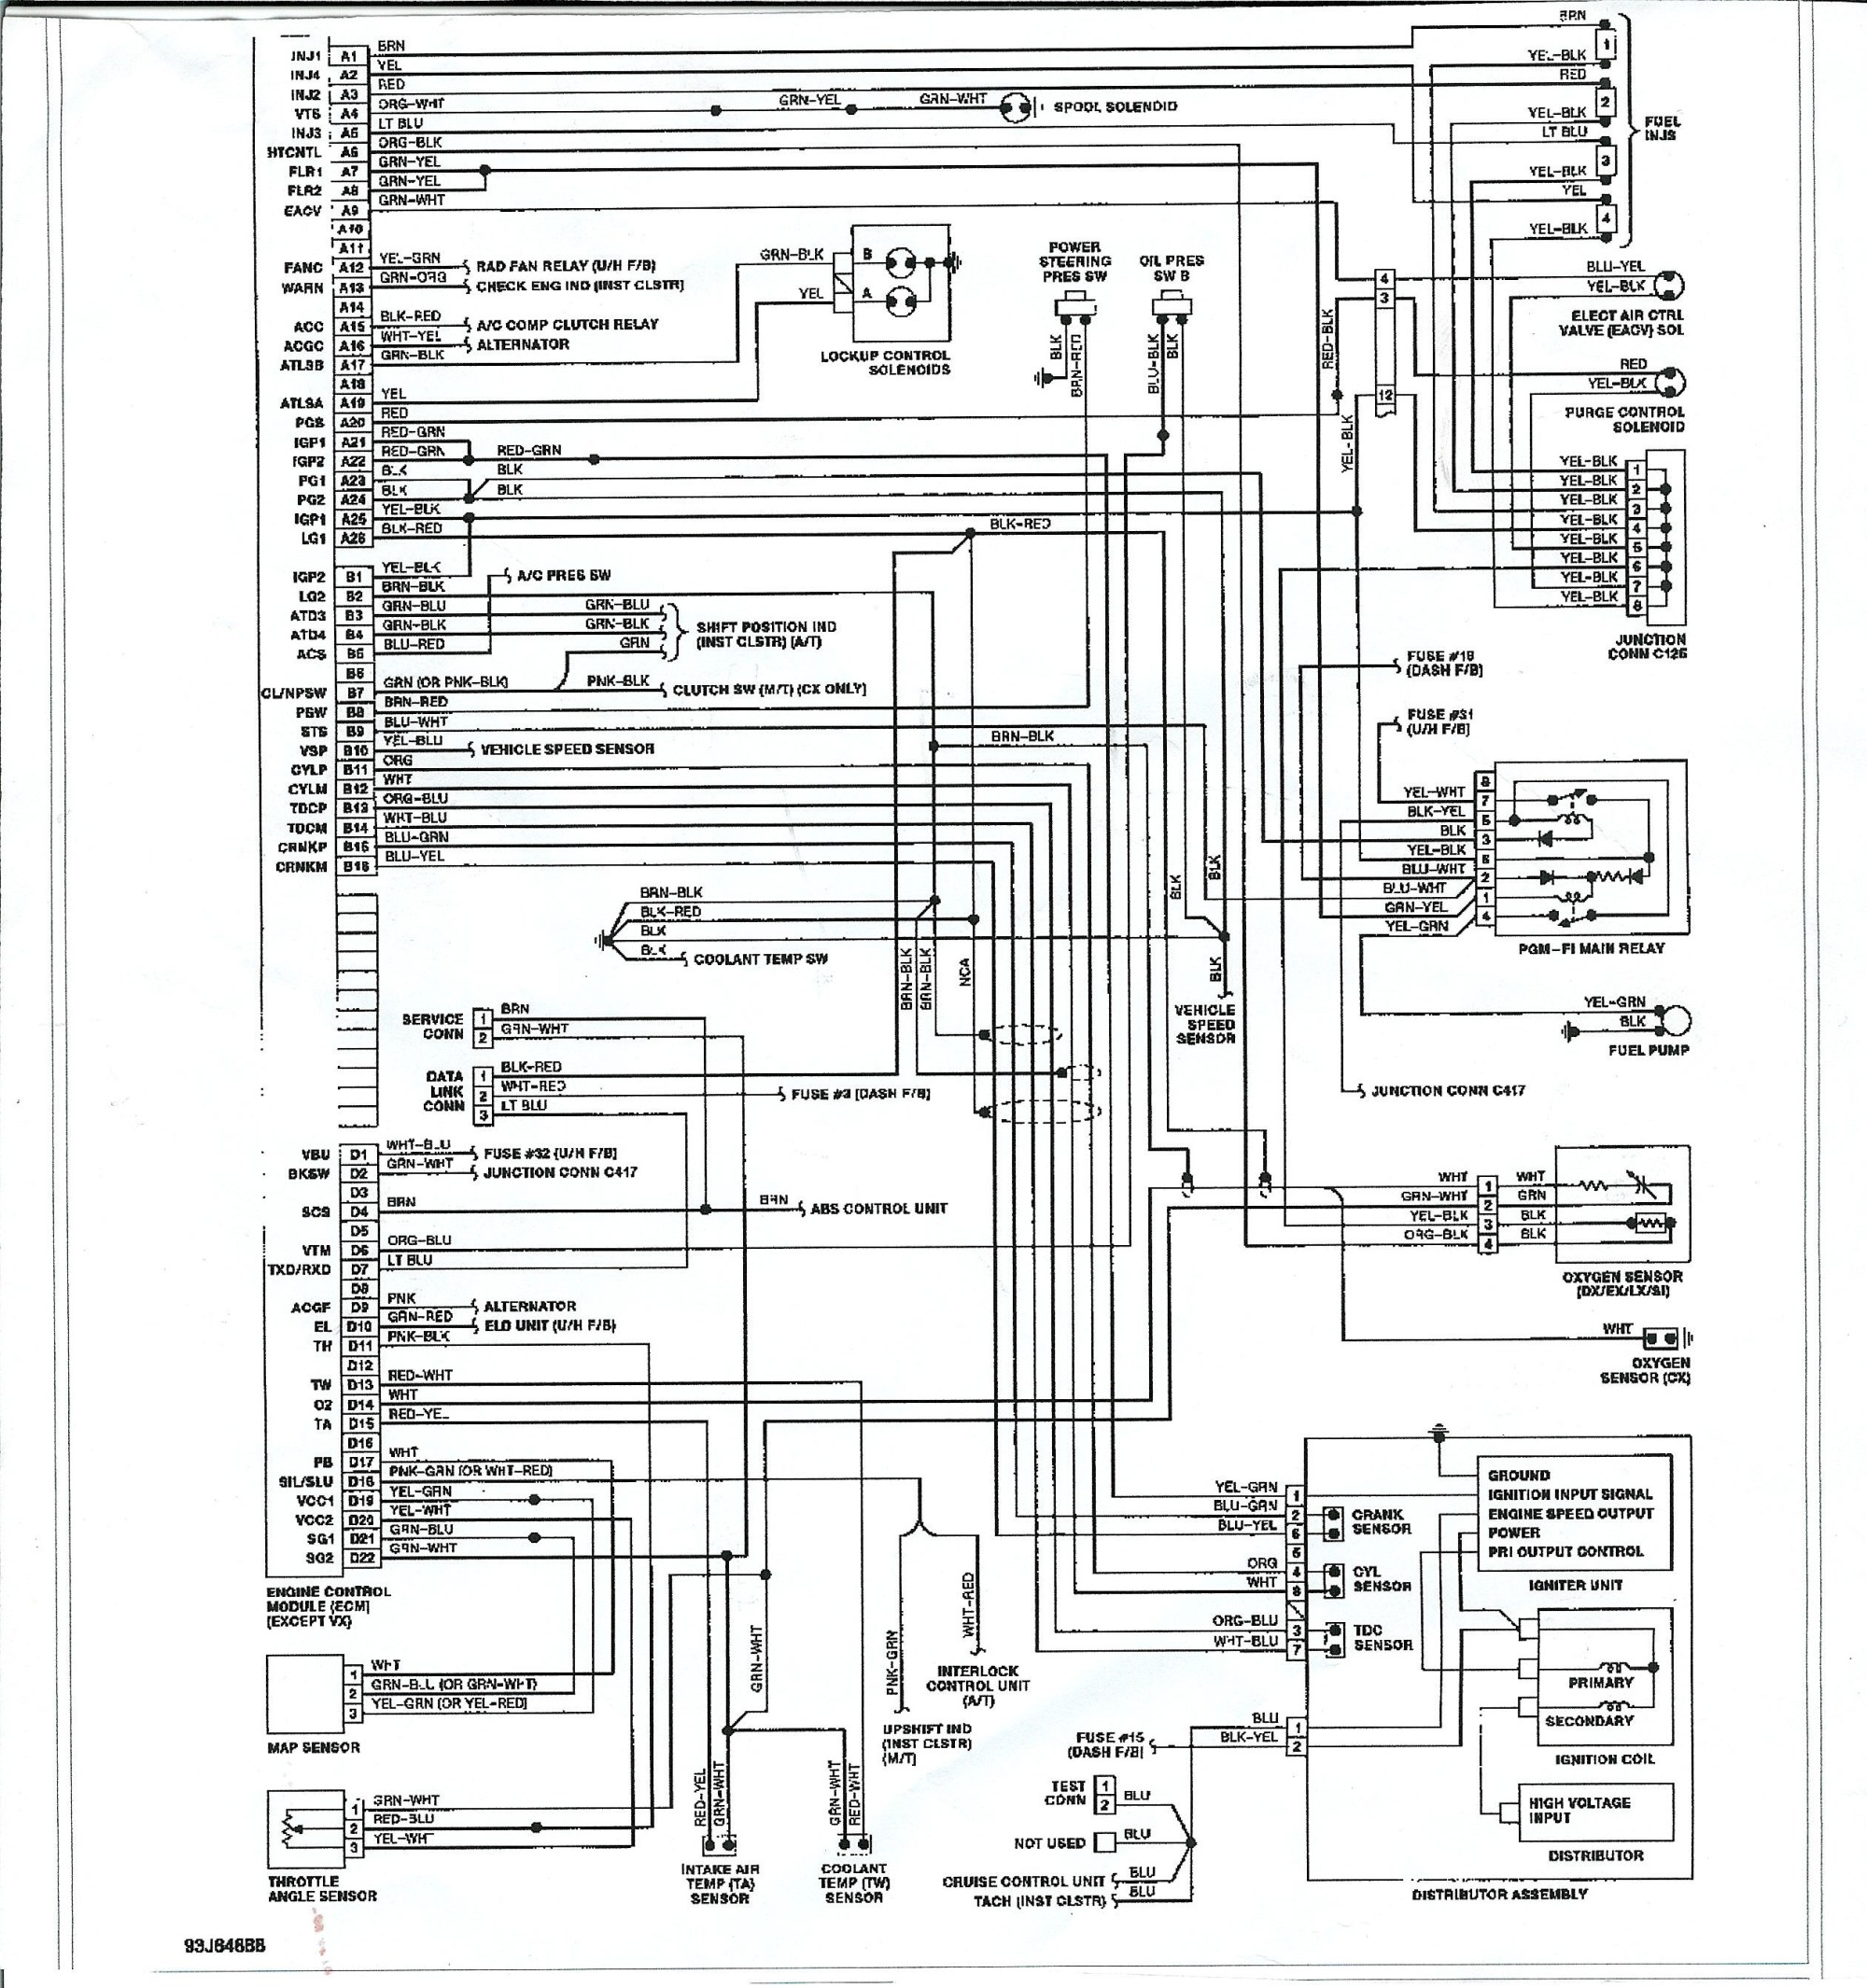 hight resolution of diagram of transmission vw transporter wiring diagram 95 honda civic transmission diagram of diagram of transmission